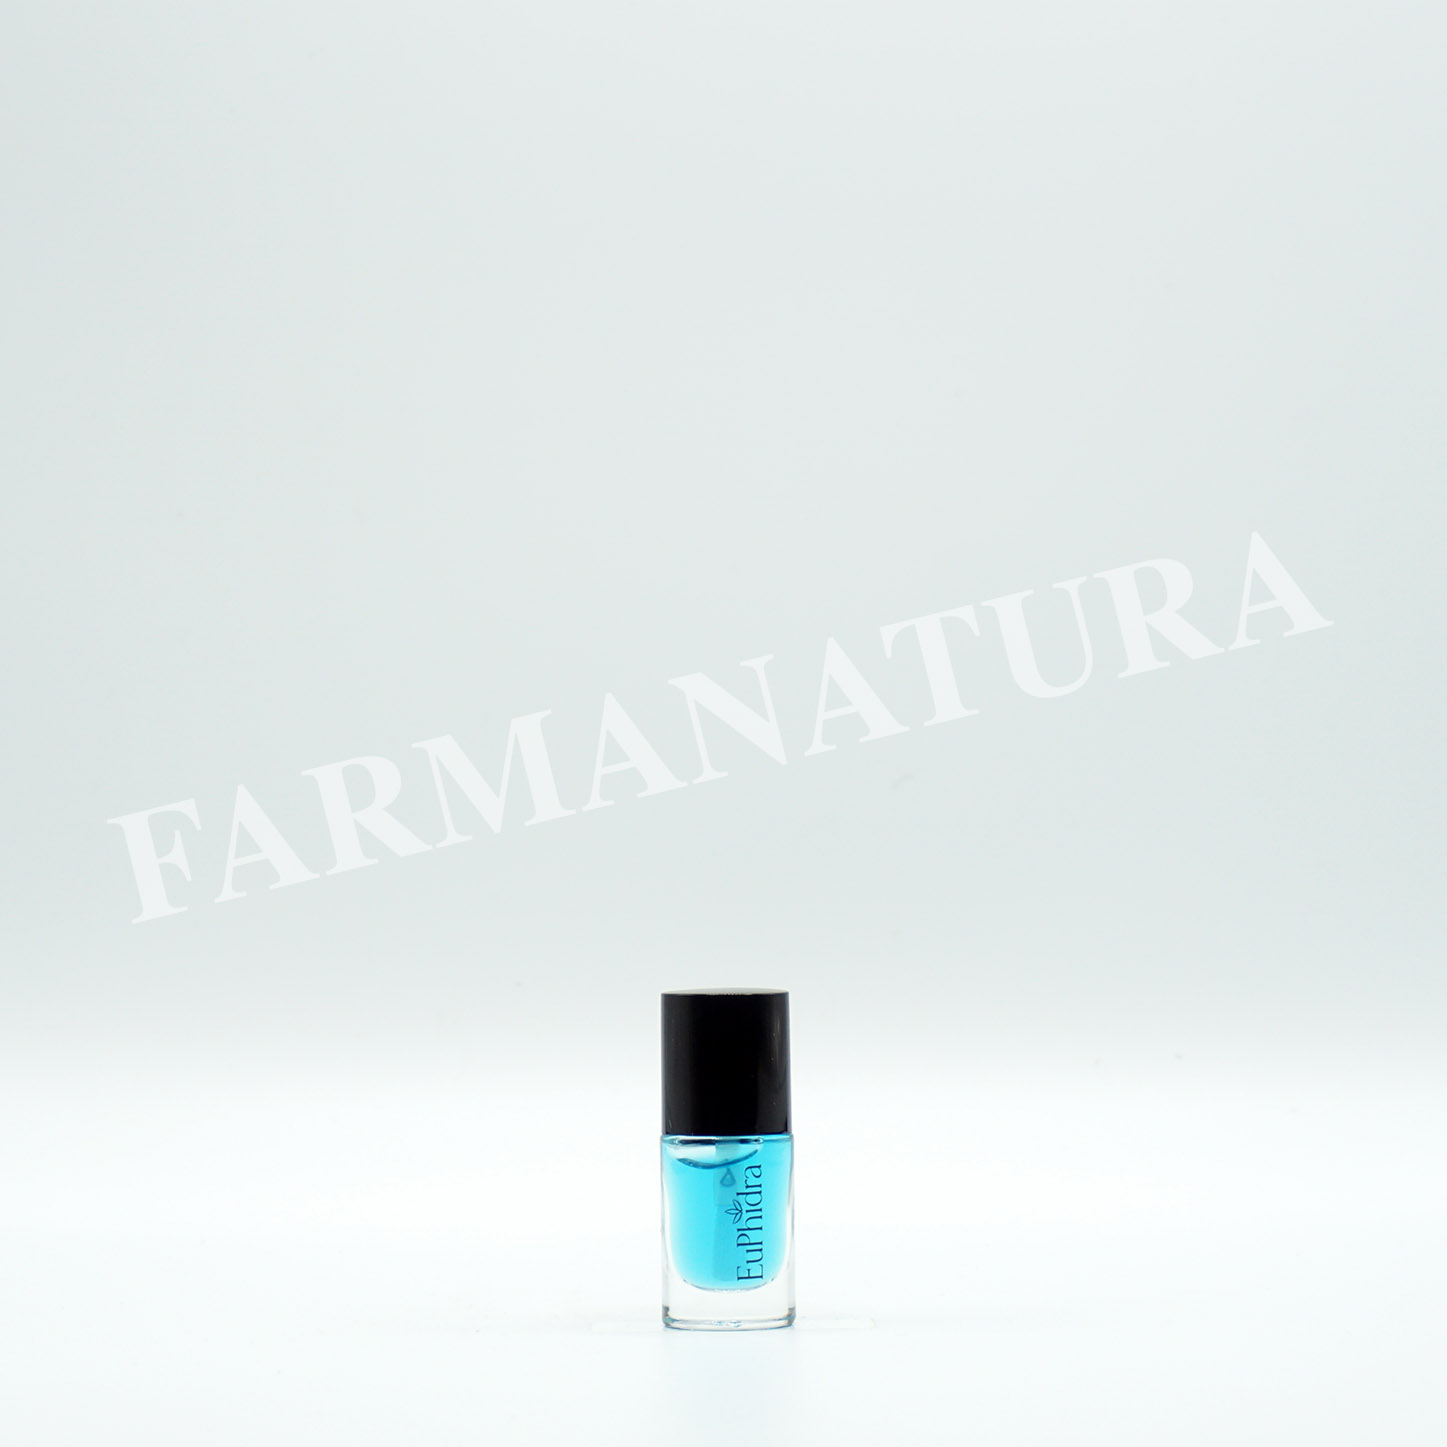 St03 Smalto Acqua Drink 5 Ml Euphidra